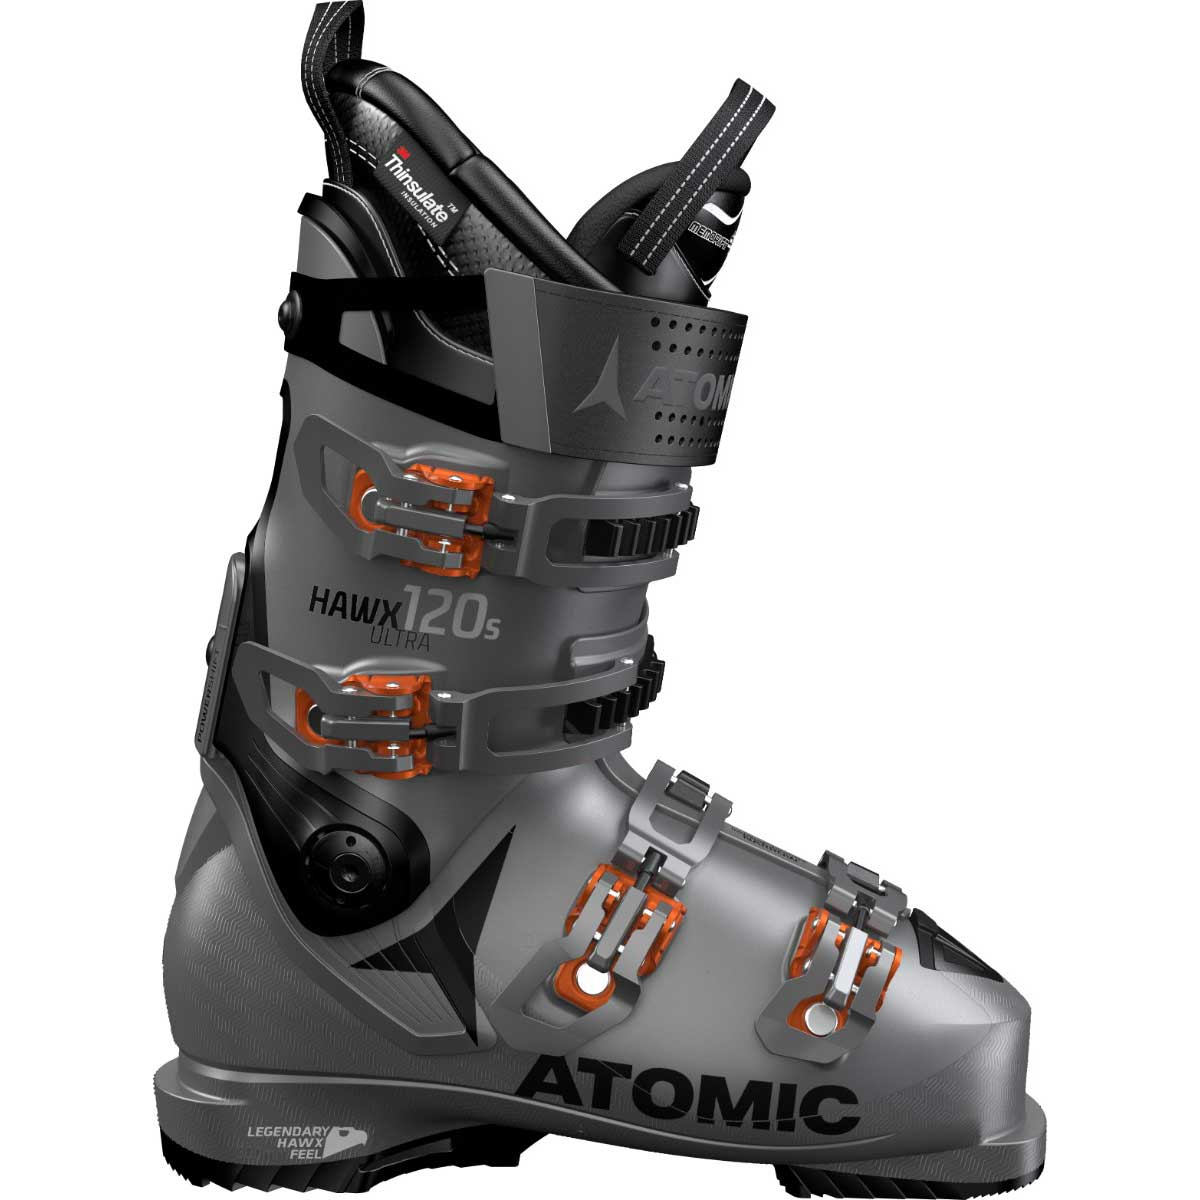 Atomic men's HAWX Ultra 120 S ski boot in anthracite and black